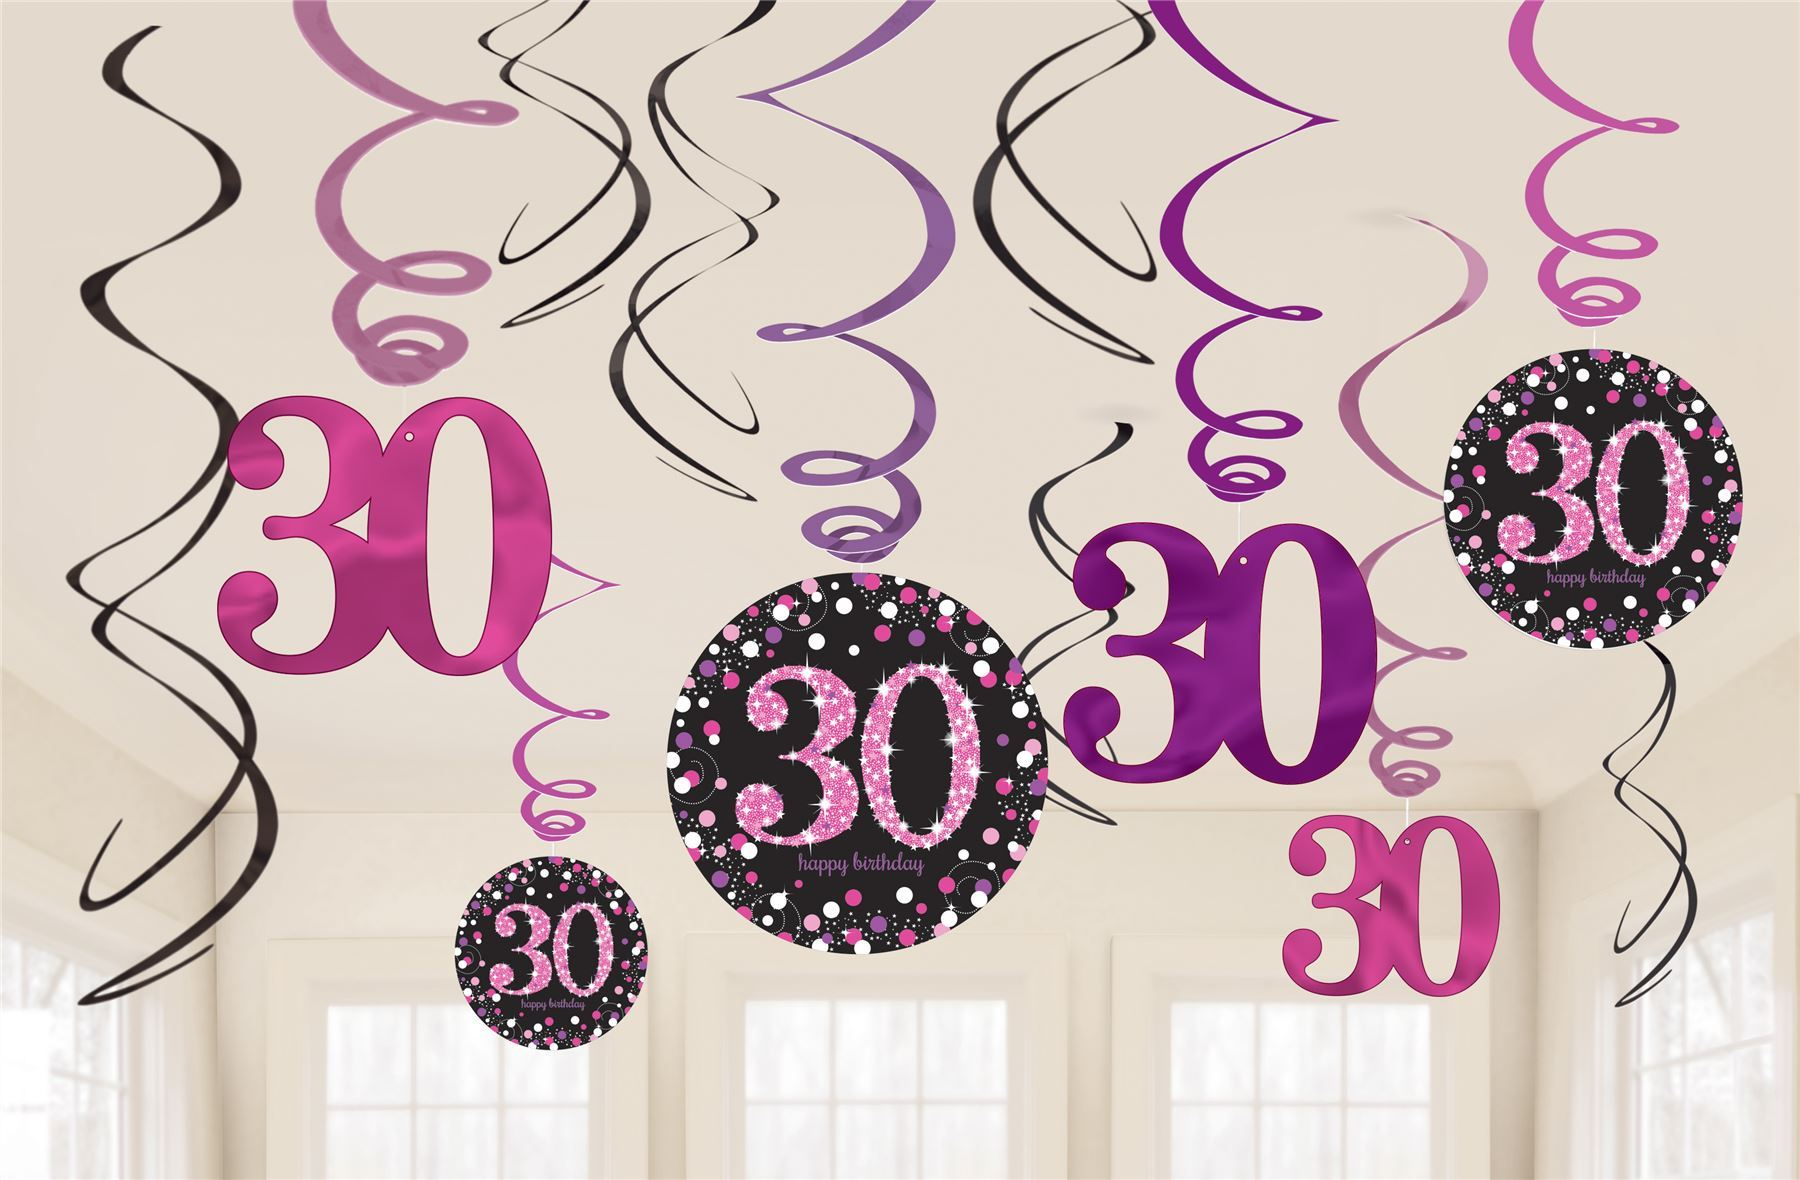 Pink-Sparkling-Celebration-30th-Birthday-Party-Tableware-Decorations-  sc 1 st  eBay & Pink Sparkling Celebration 30th Birthday Party Tableware Decorations ...